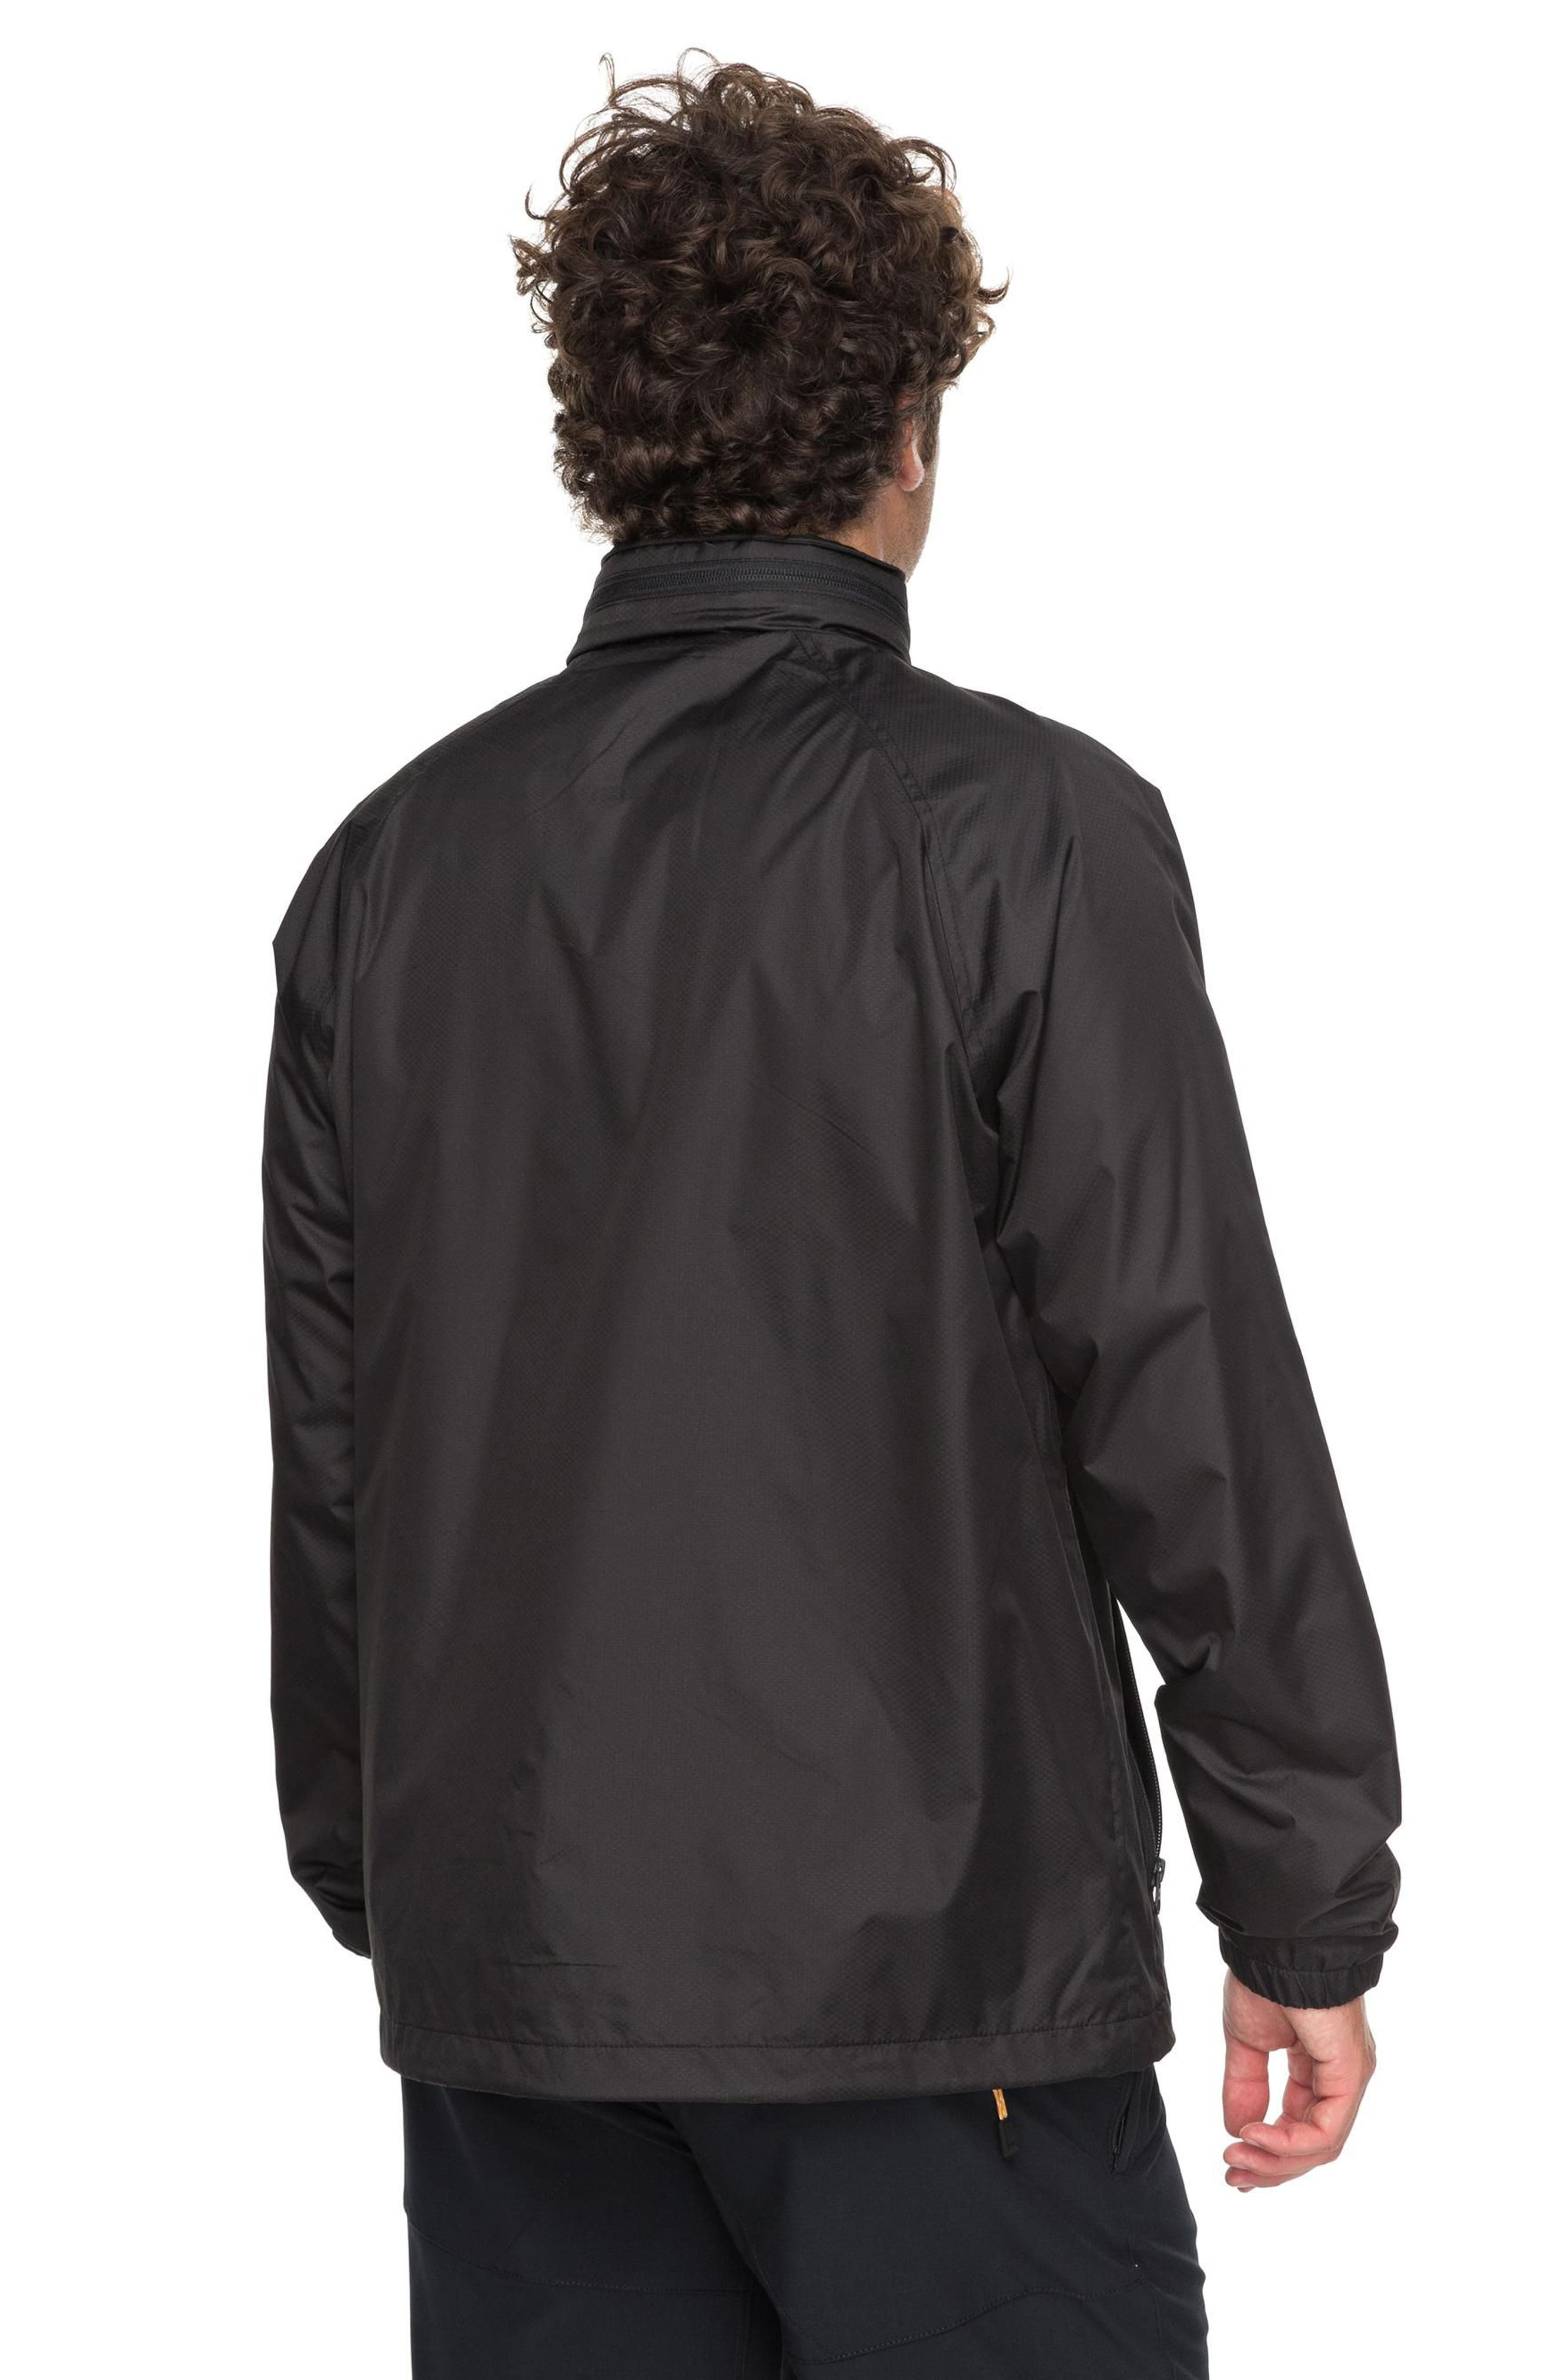 Shell Shock Water Repellent Windbreaker,                             Alternate thumbnail 4, color,                             002